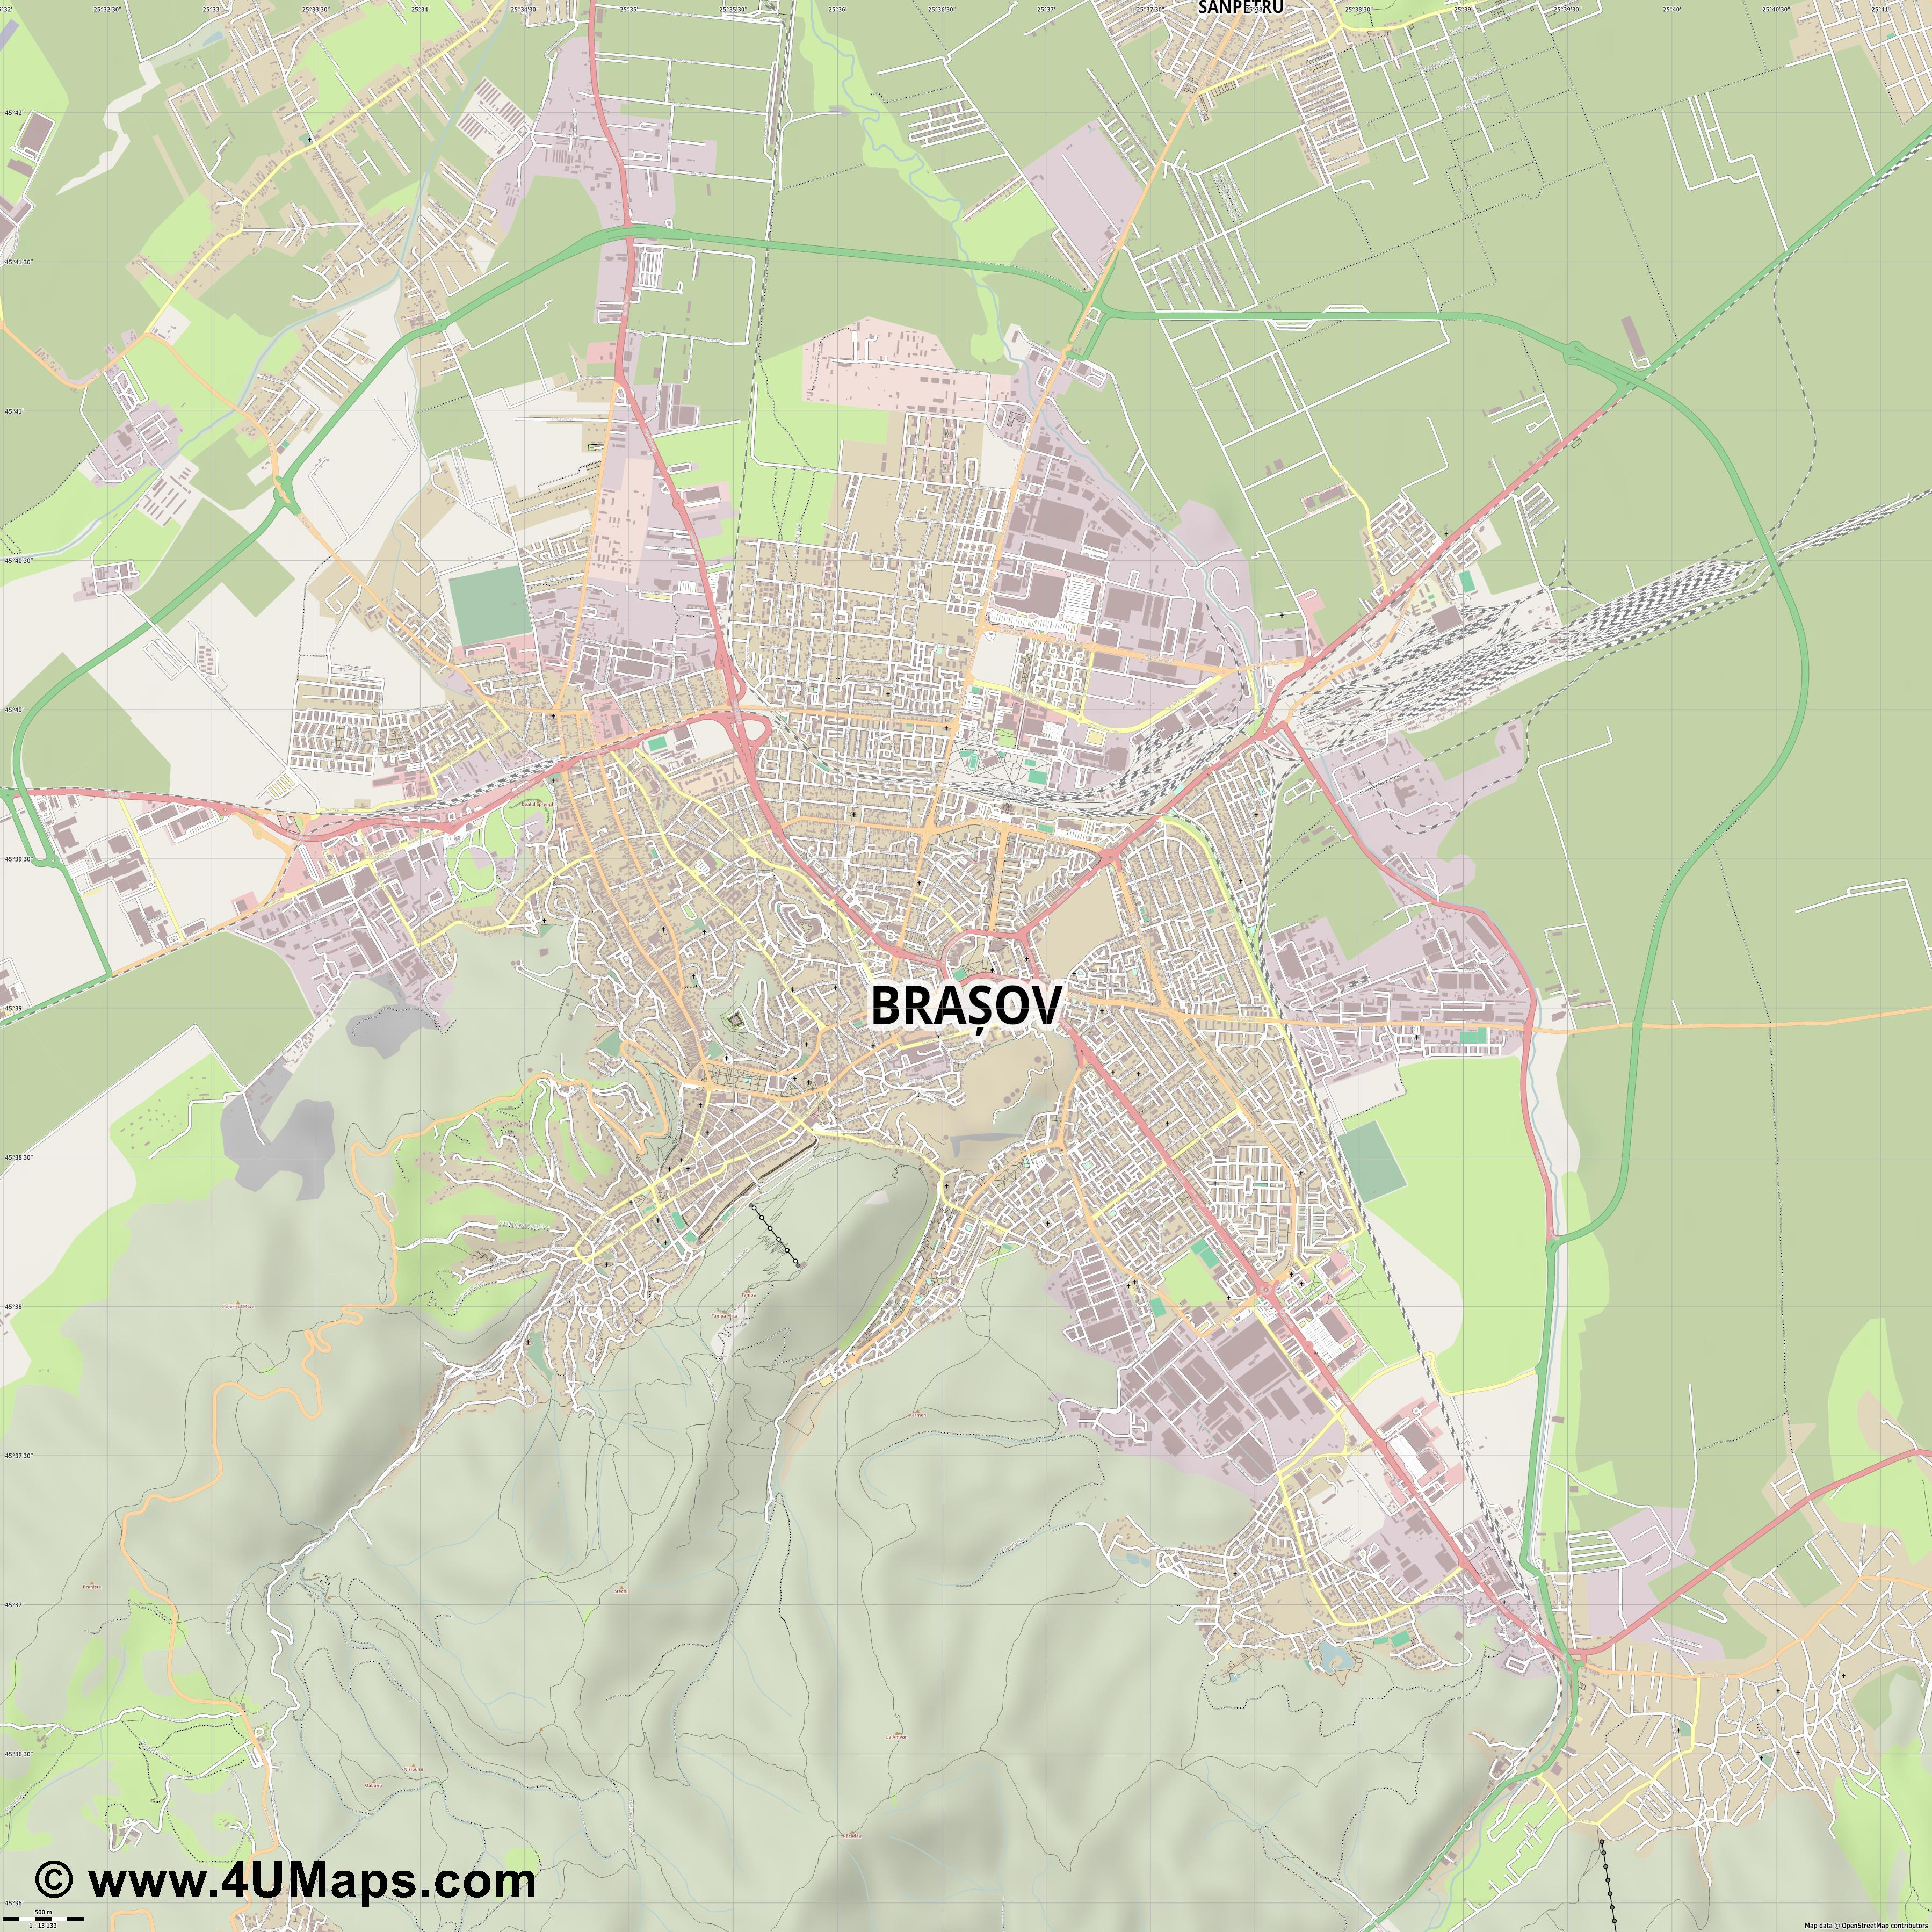 Brașov Brasov Kronstadt  jpg ultra high detail preview vector city map